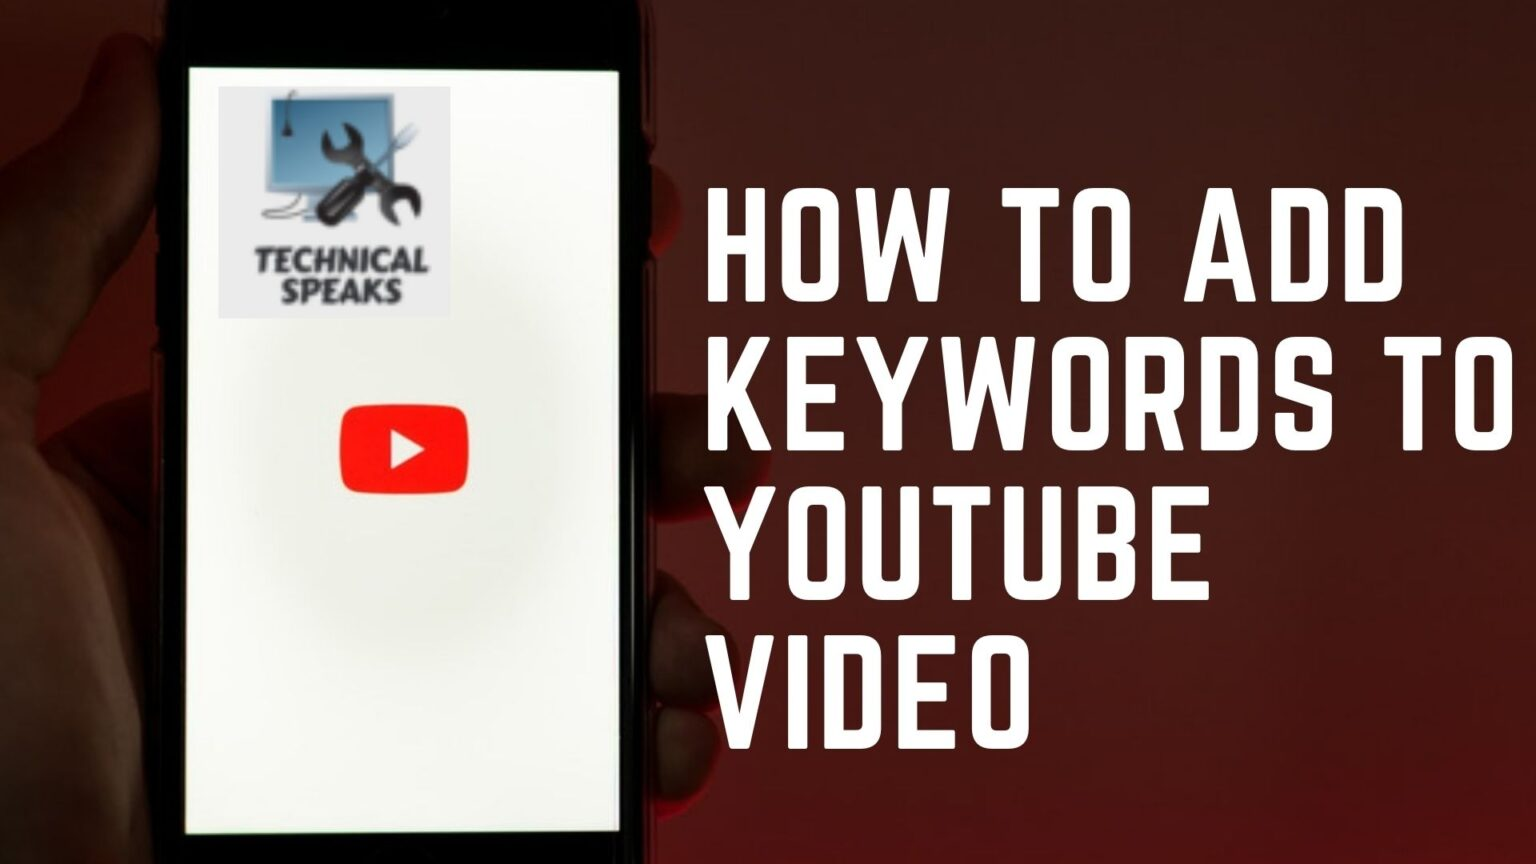 Add Keywords to YouTube Video